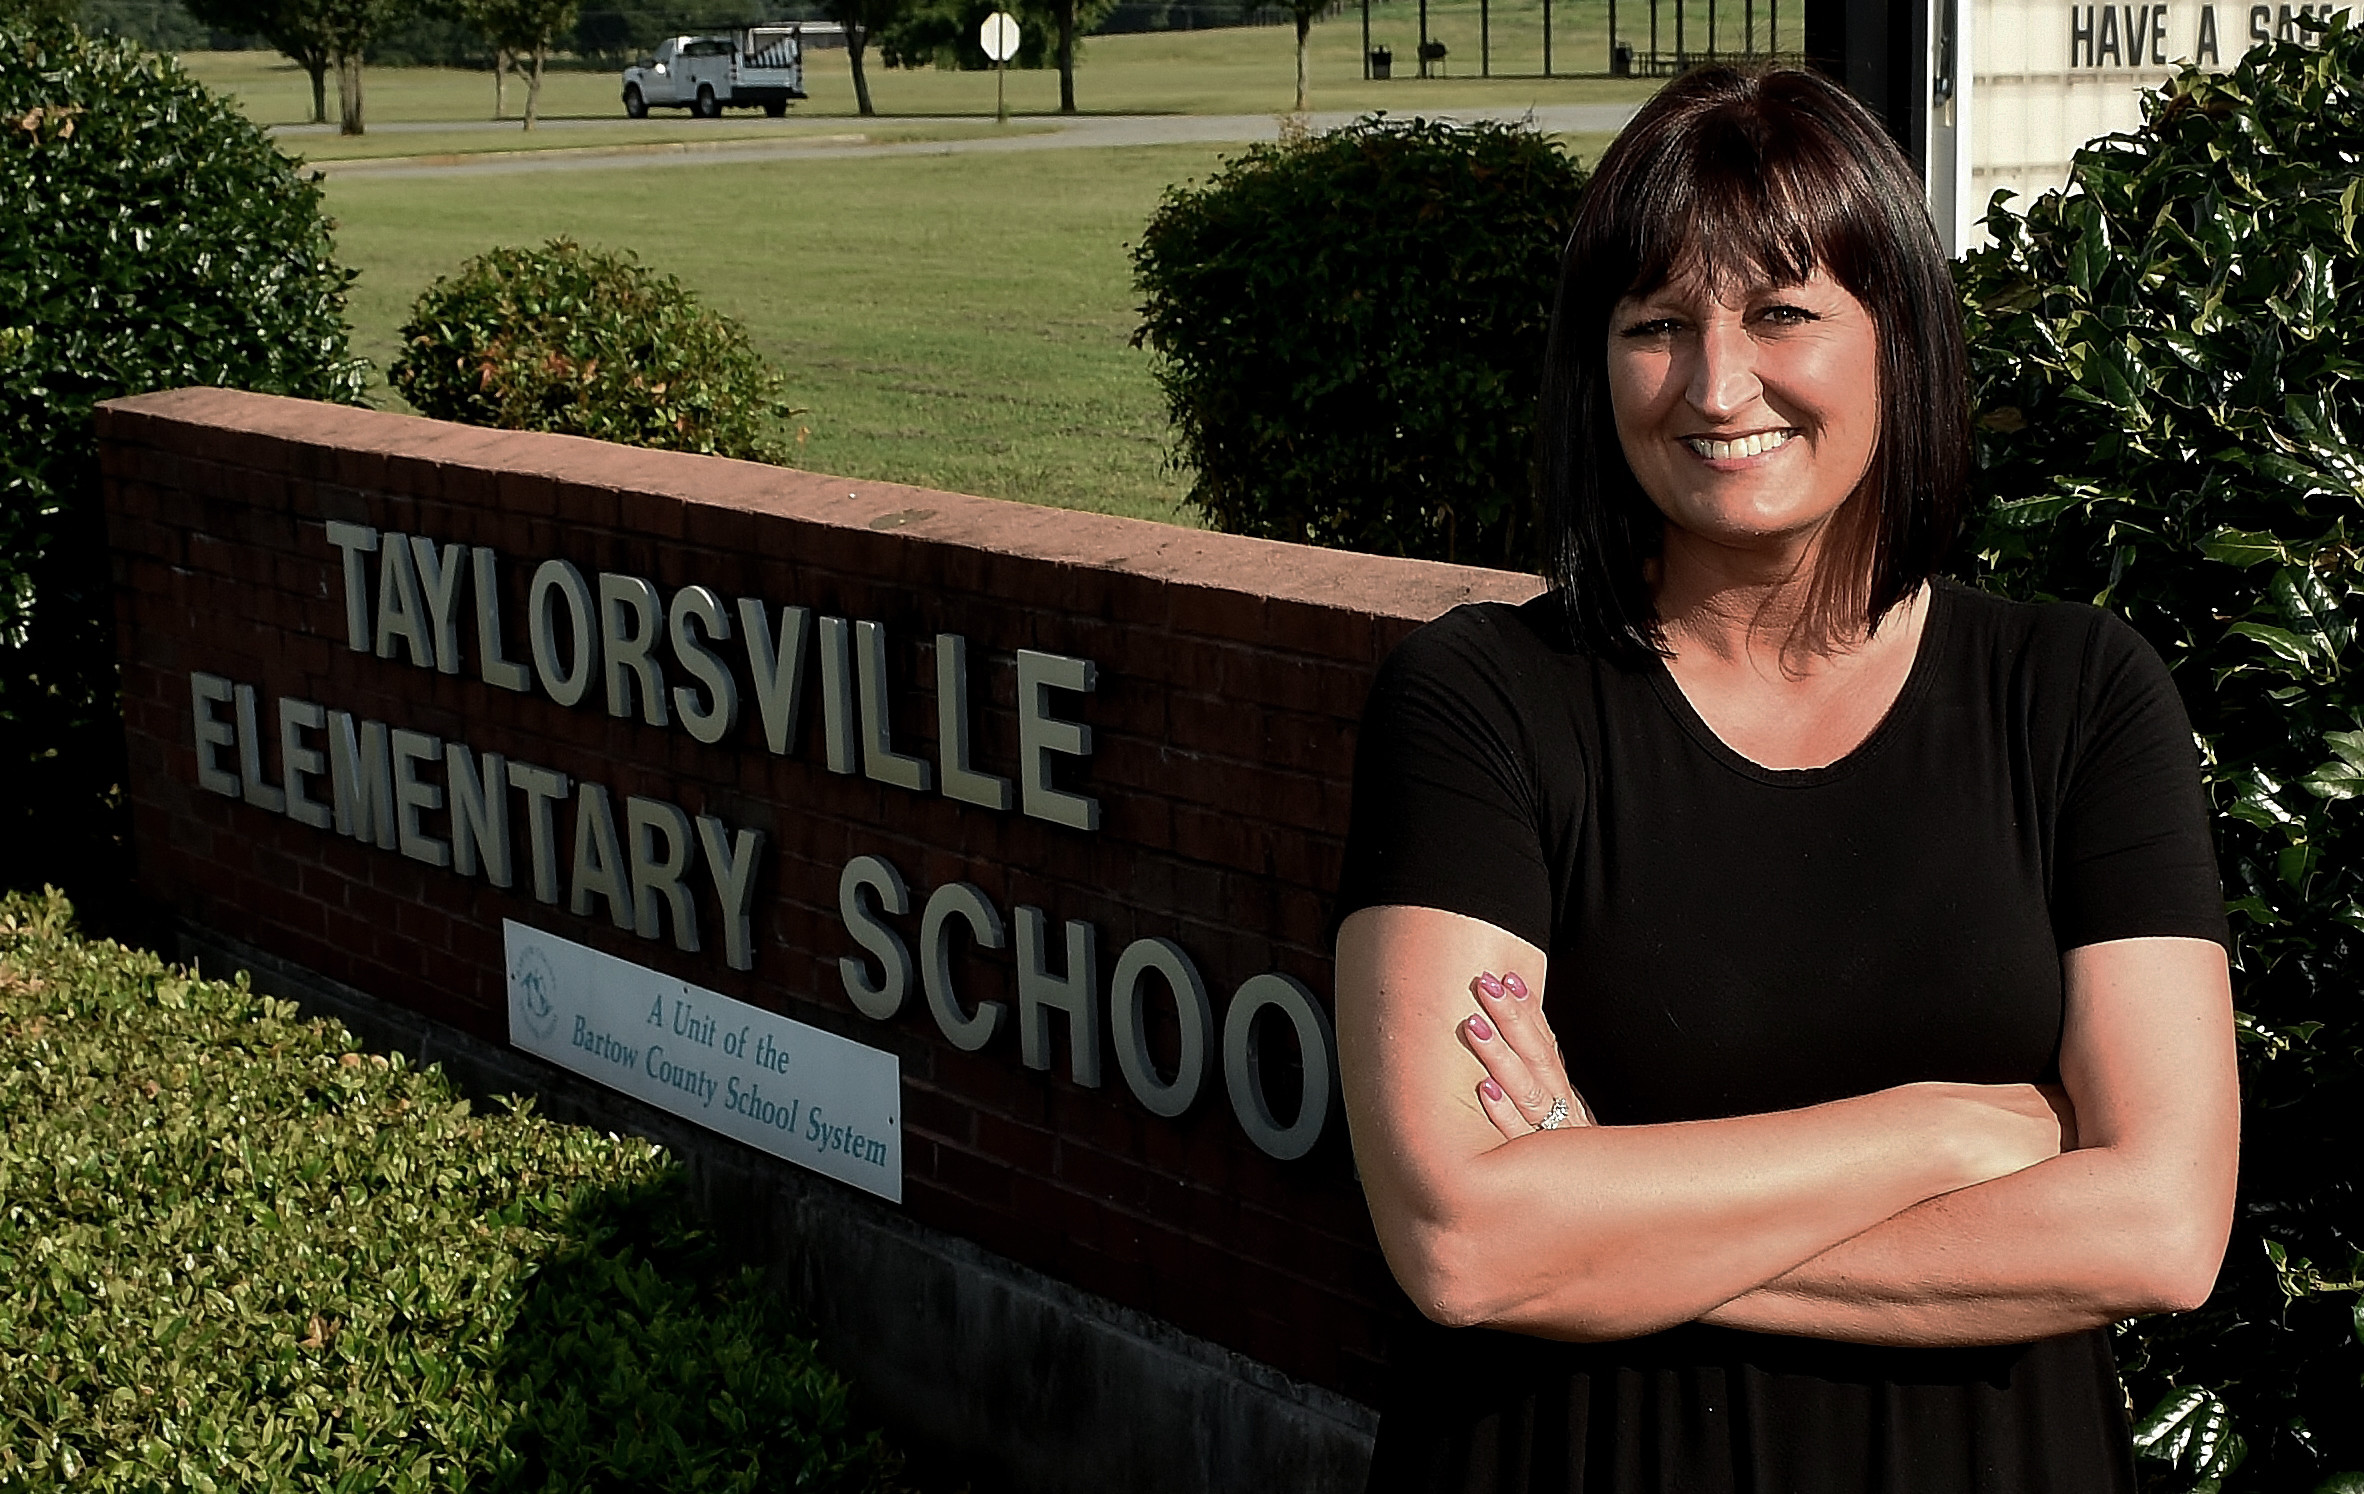 Jennifer Miller, the new Taylorsville Elementary principal, was a middle school assistant principal before coming to Bartow.